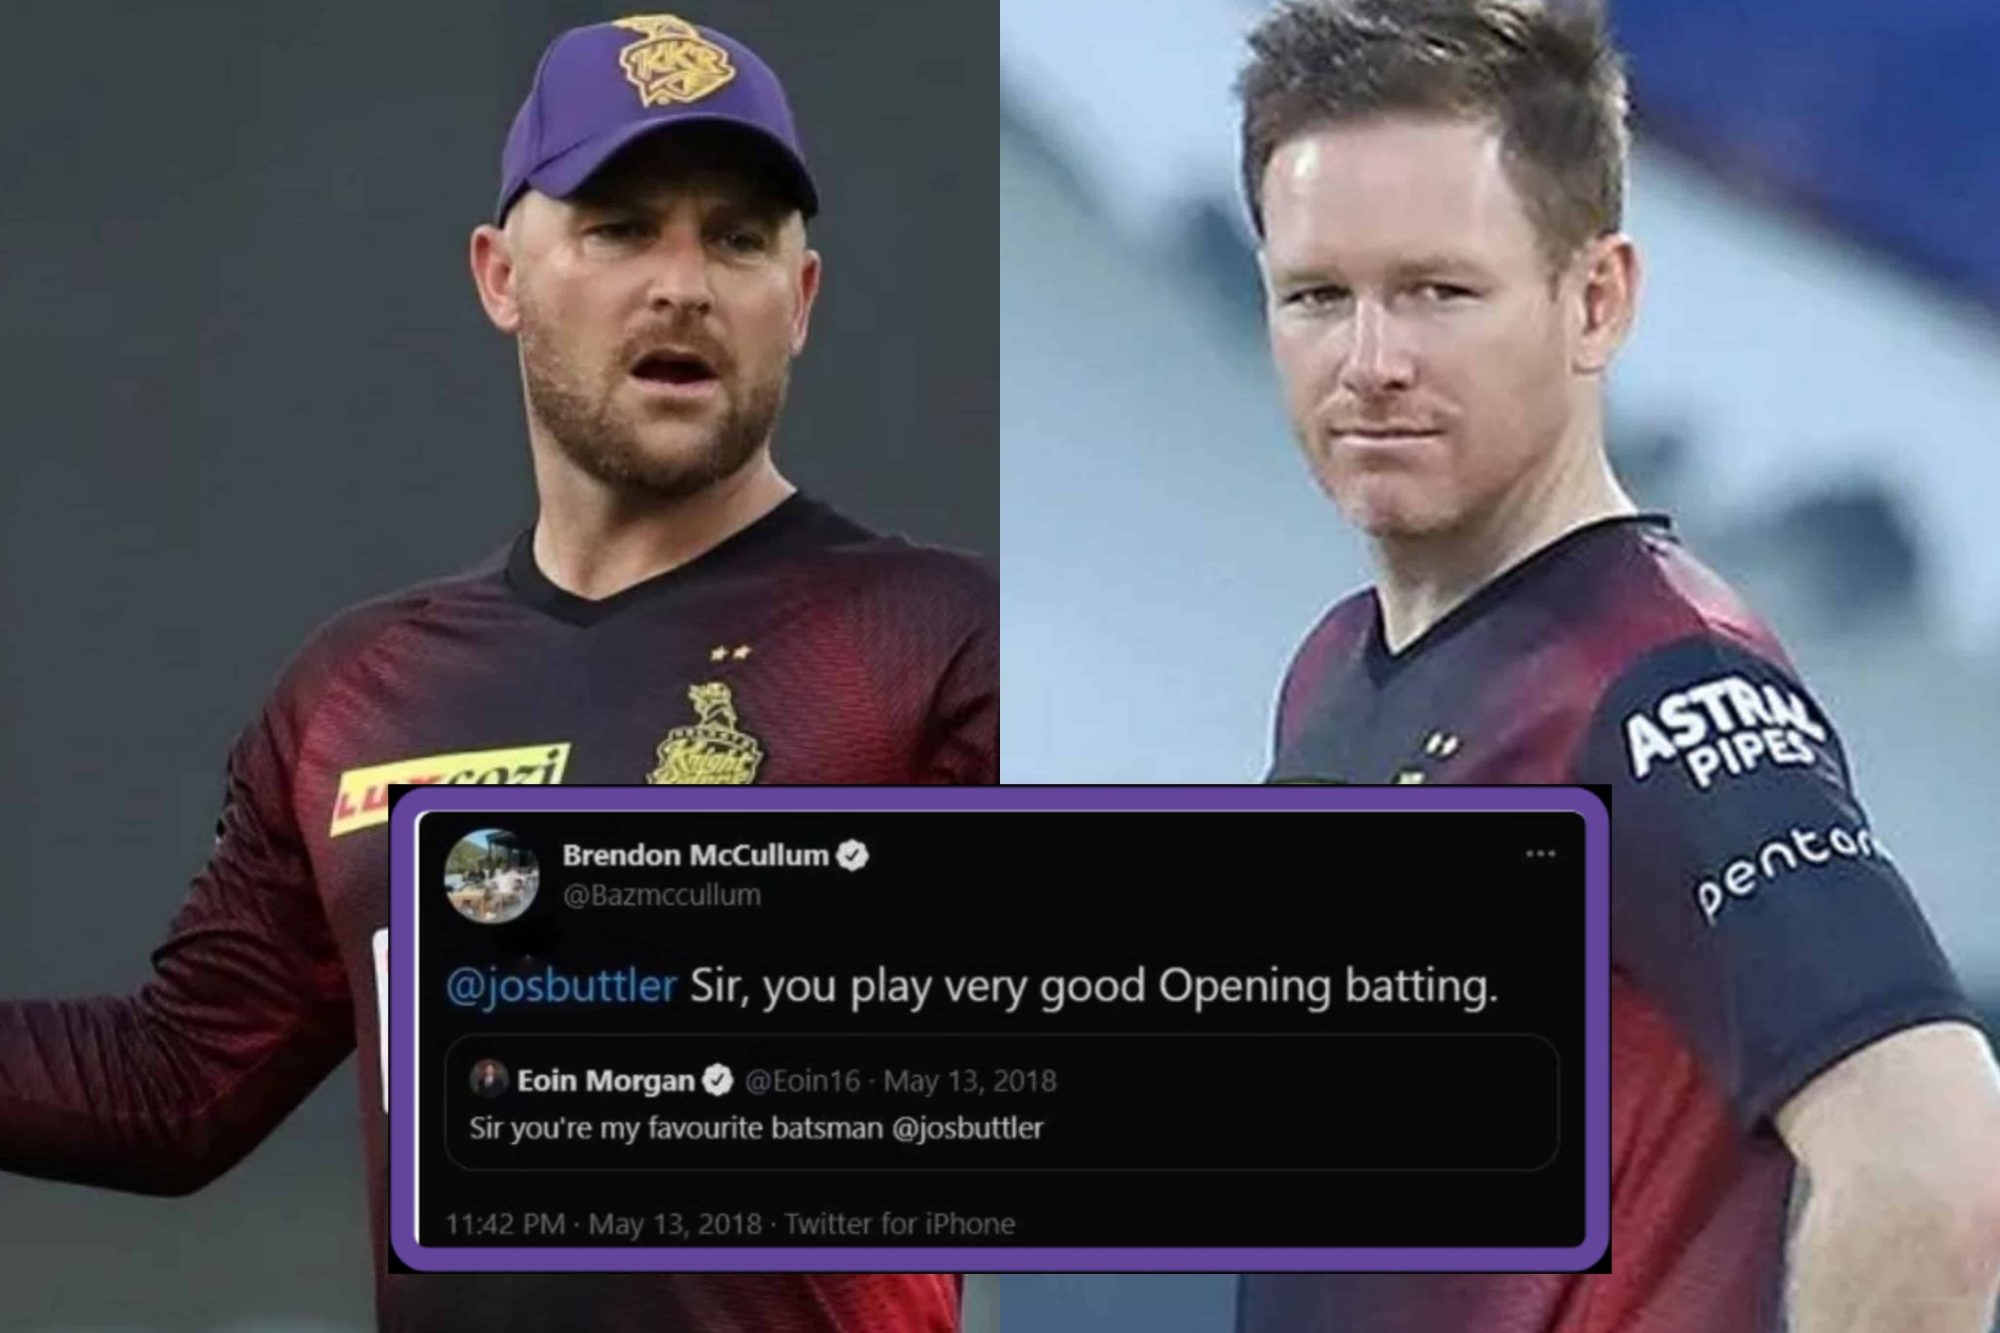 KKR CEO Hinted: Eoin Morgan and Brendon McCullum Might Face Sanctions For Historic Tweets Mocking Indian Accent